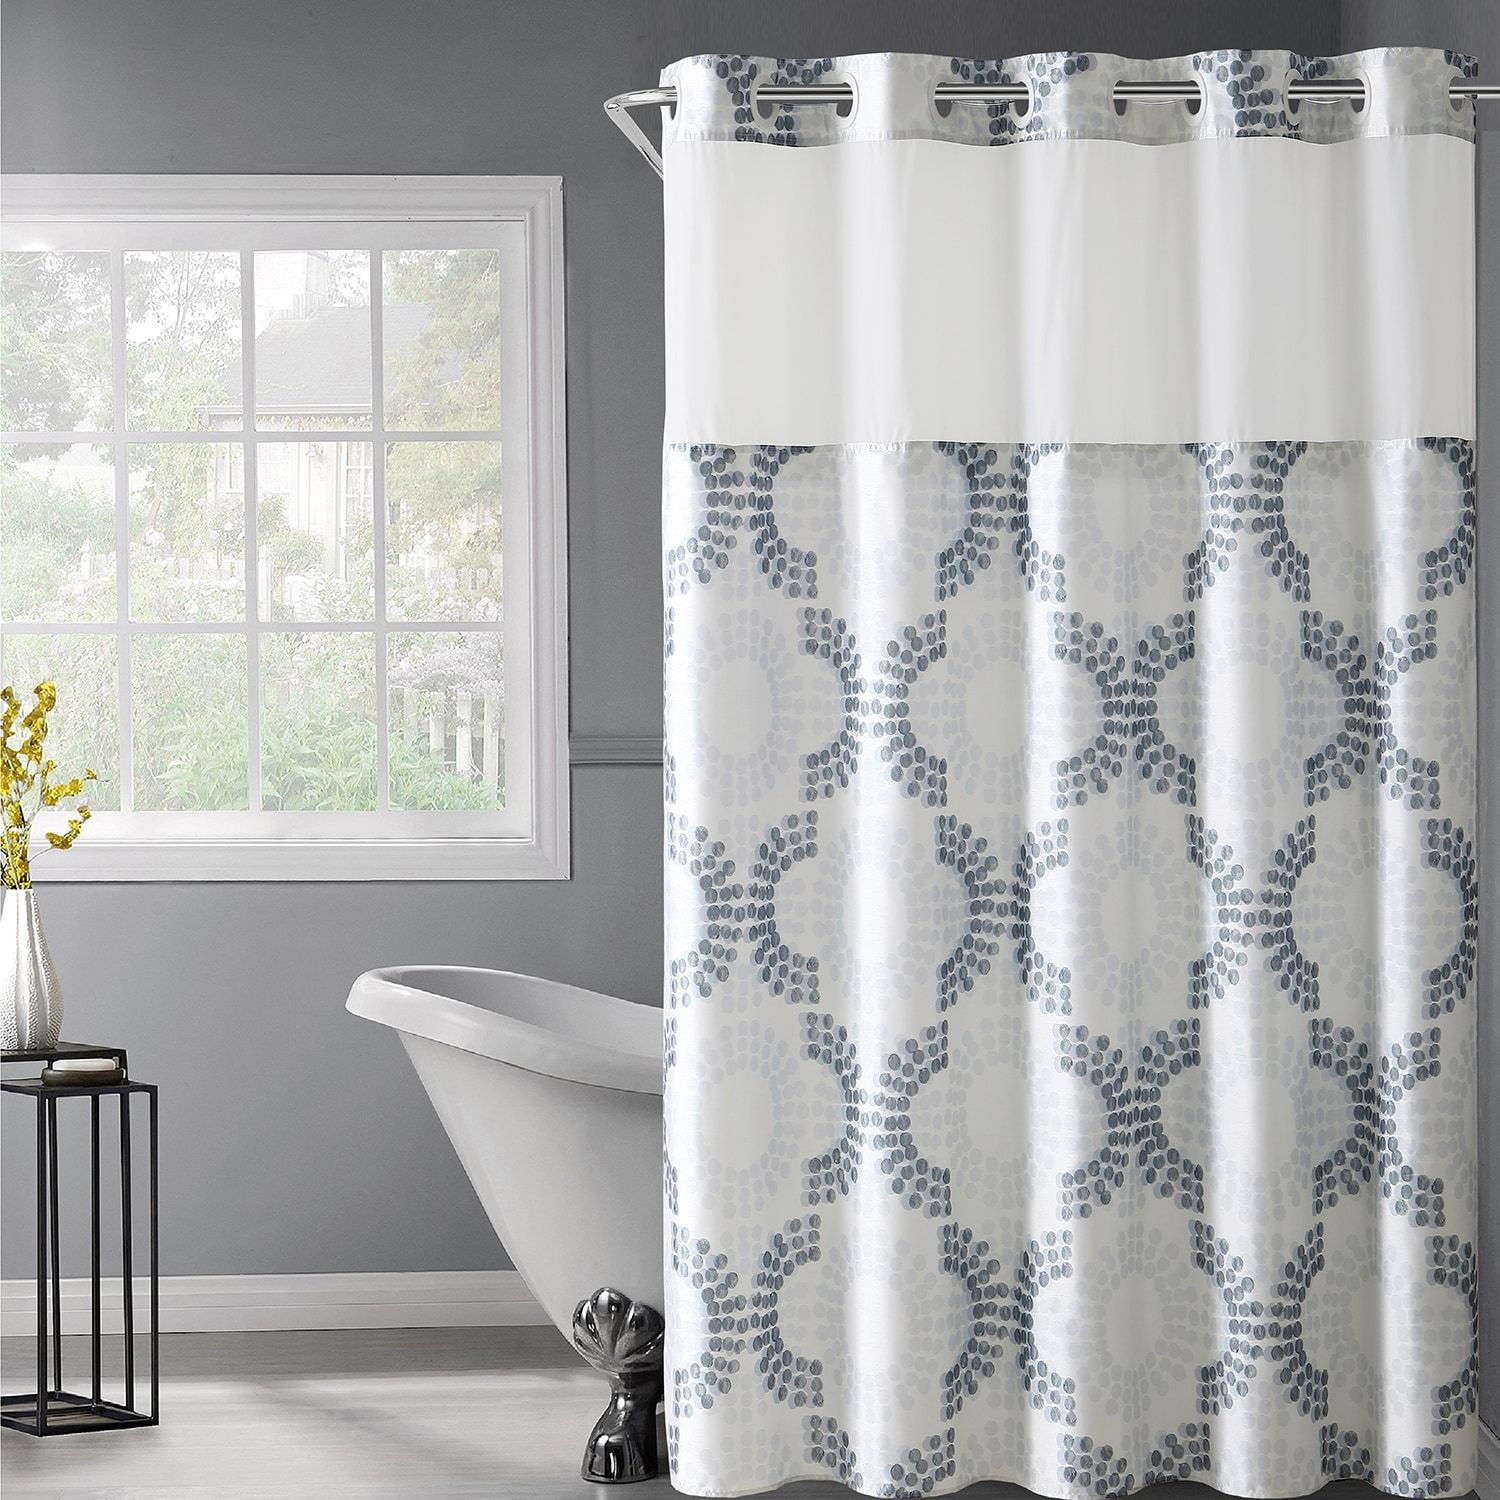 Hookless Stamped Gate Shower Curtain Snap In Liner Hookless Shower Curtain Curtains Shower Curtain